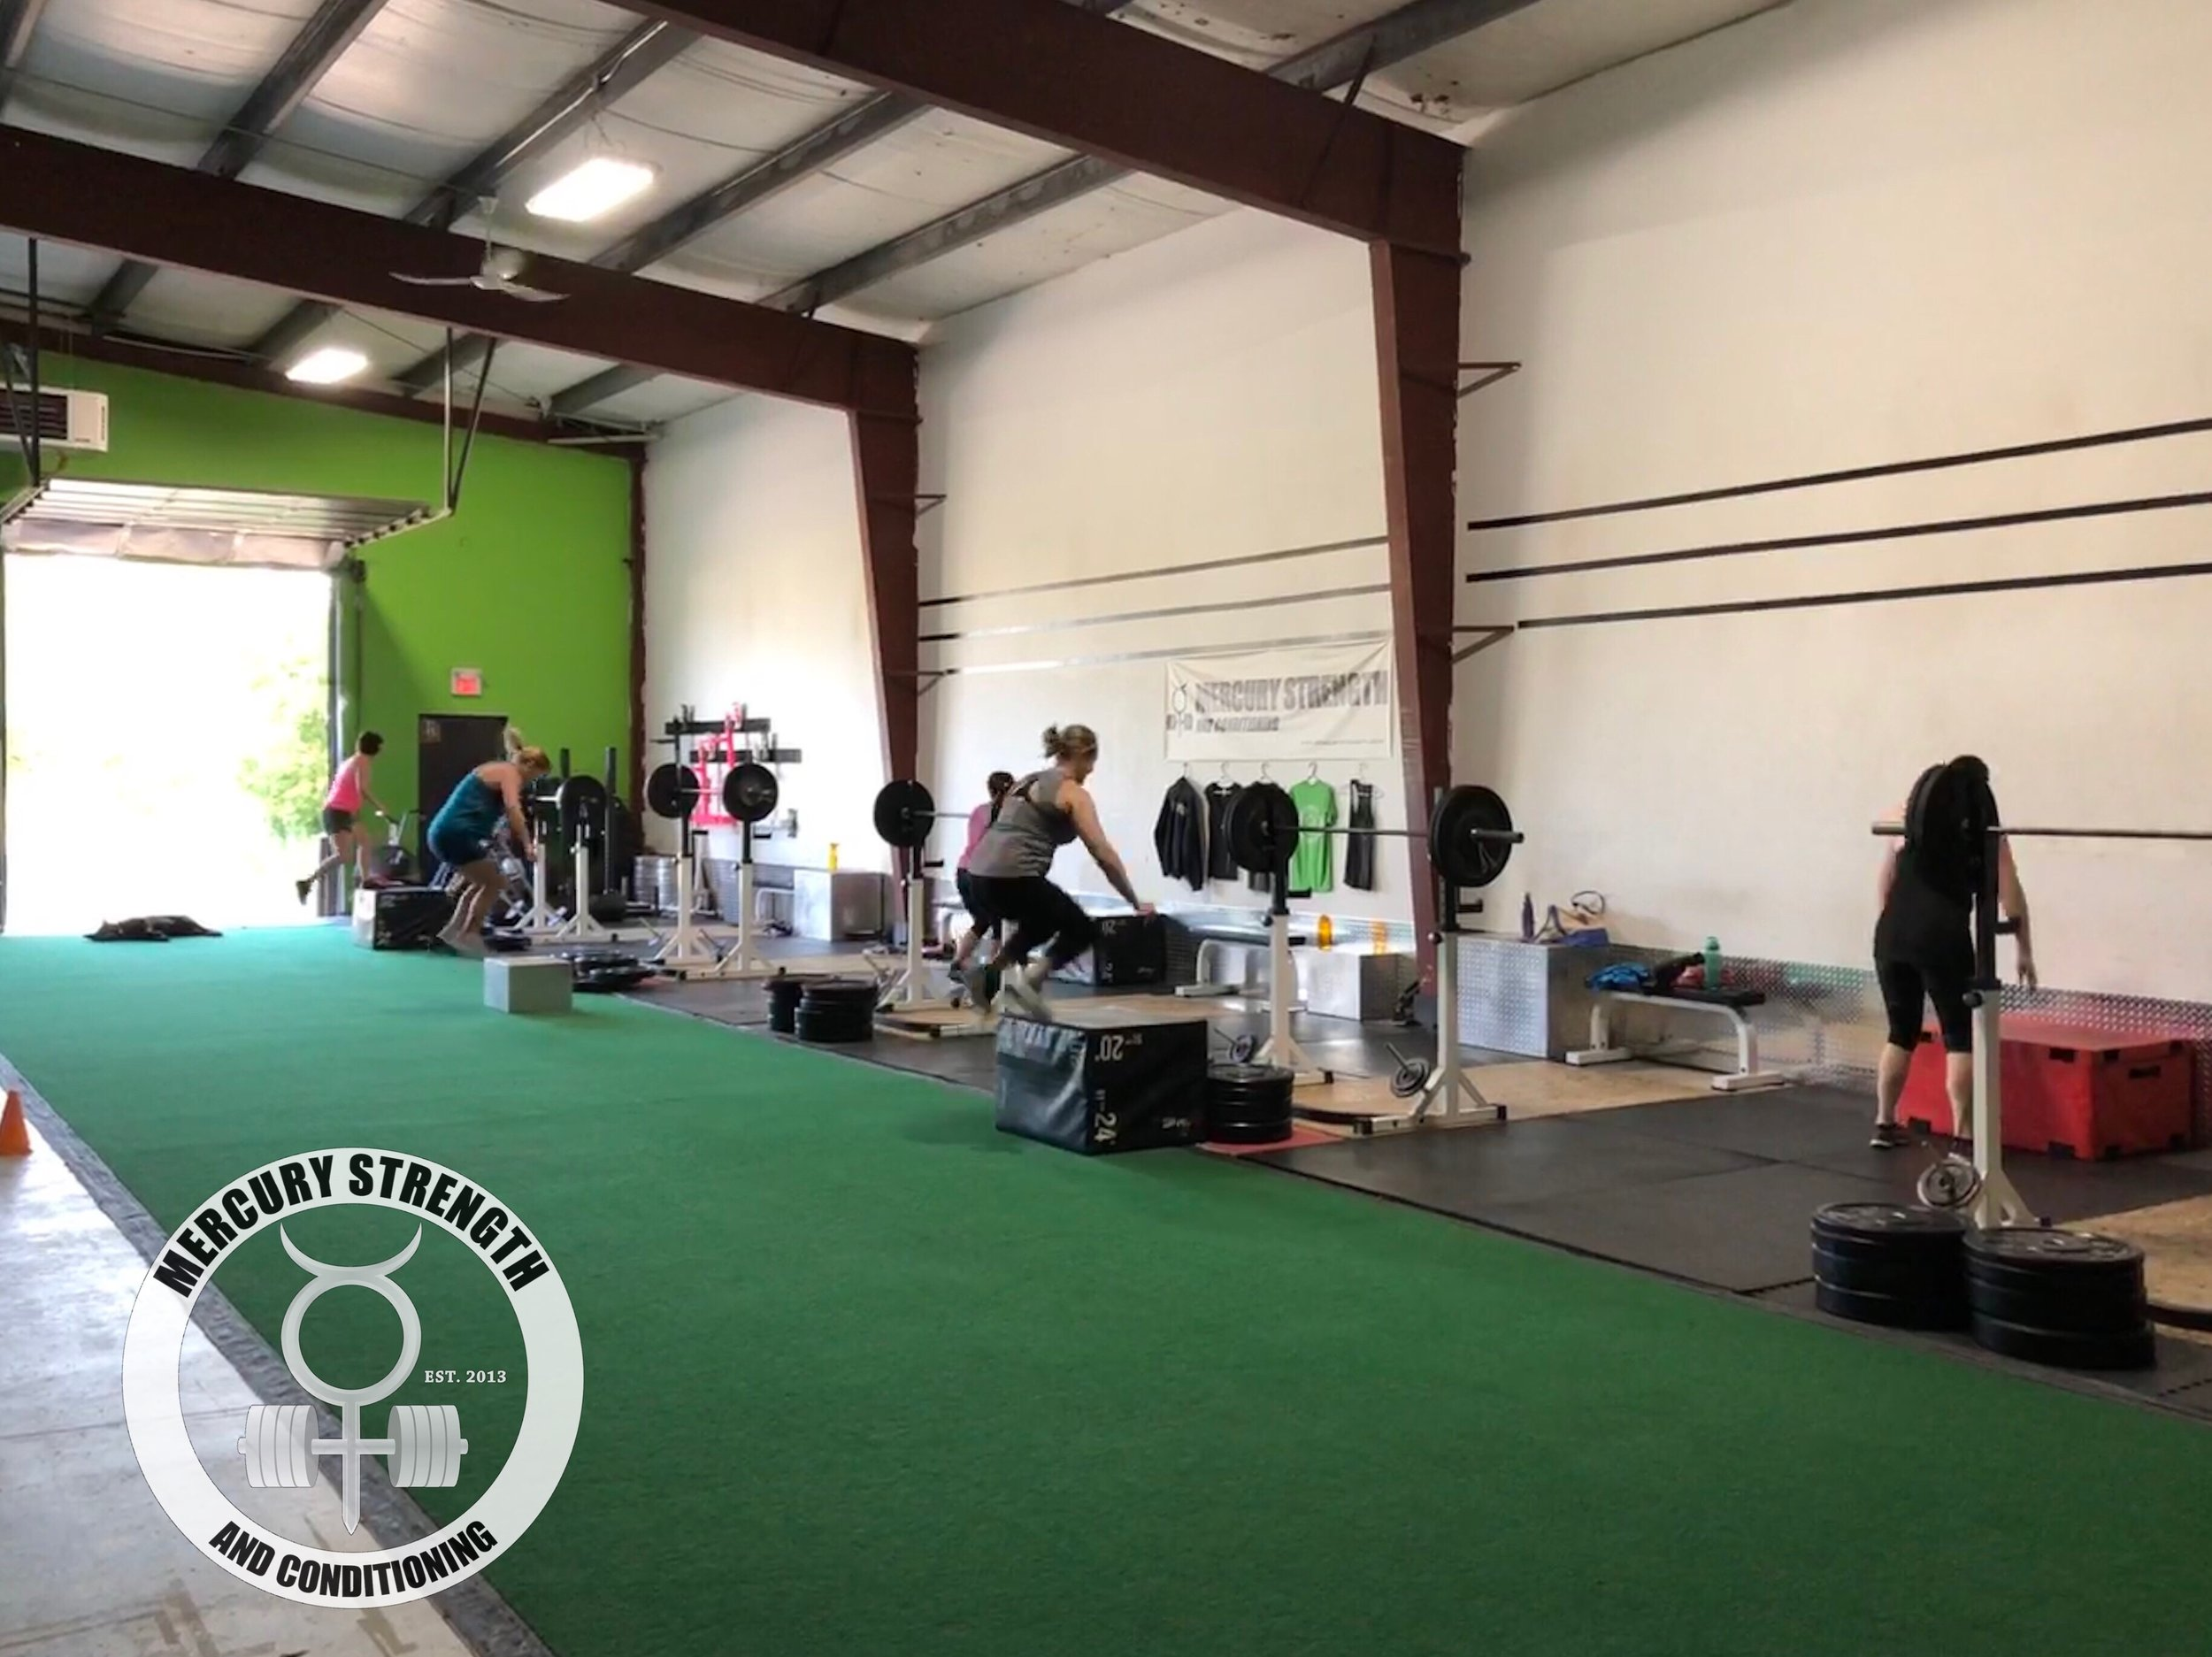 Gym-powerlifting-Olympic lifting-fitness-personal training-training-bootcamp-crossfit-kingston-kingston gym-kids-mercury-strength-conditioning-athlete-lunge-box jump